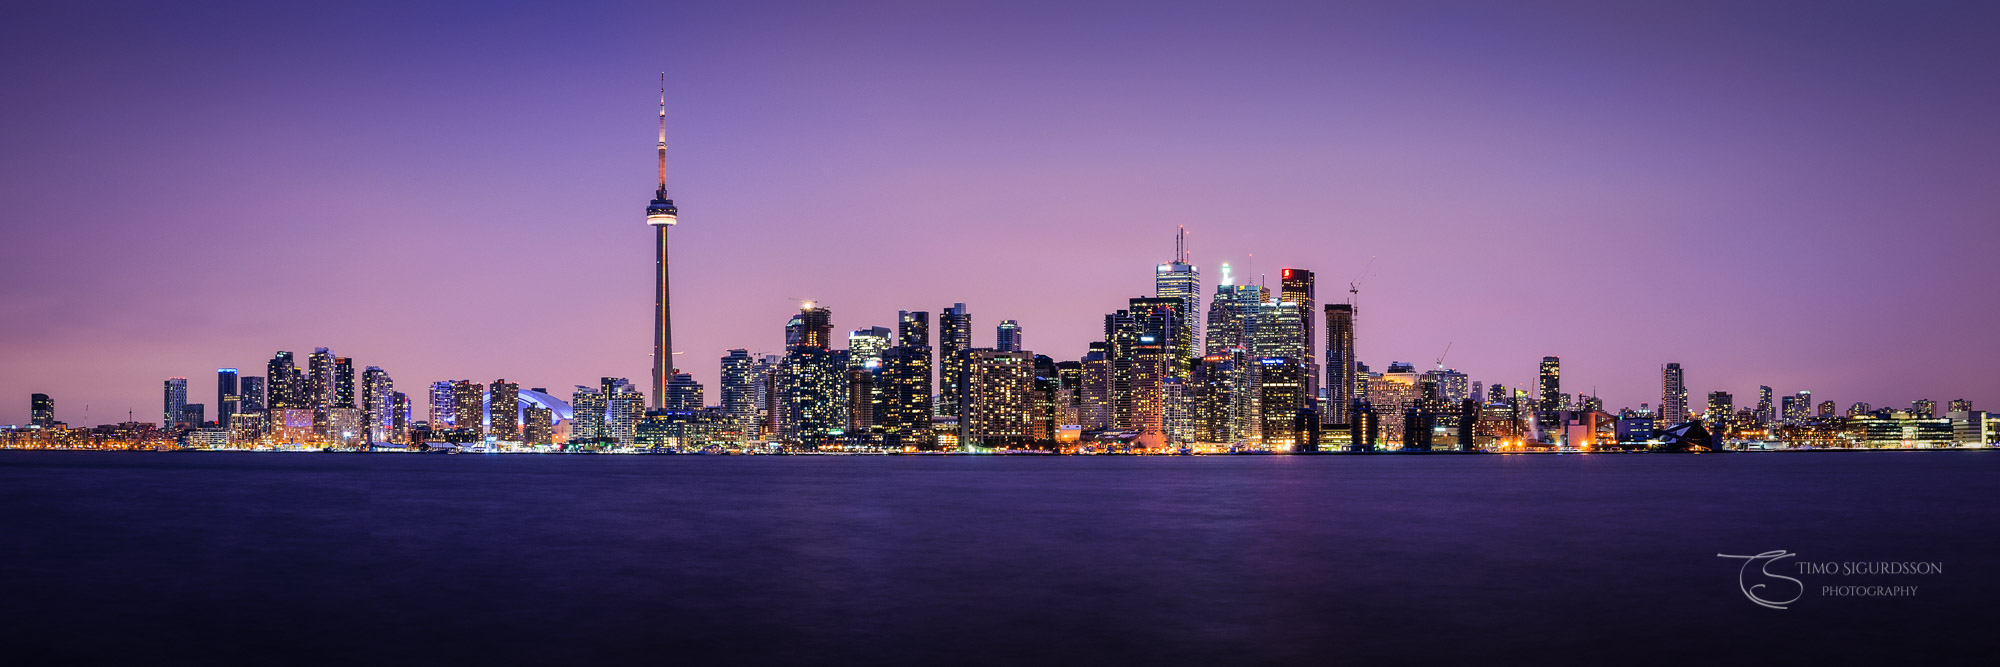 Toronto, Canada. Skyline panorama at night. Lake Ontario. Ward's Island.